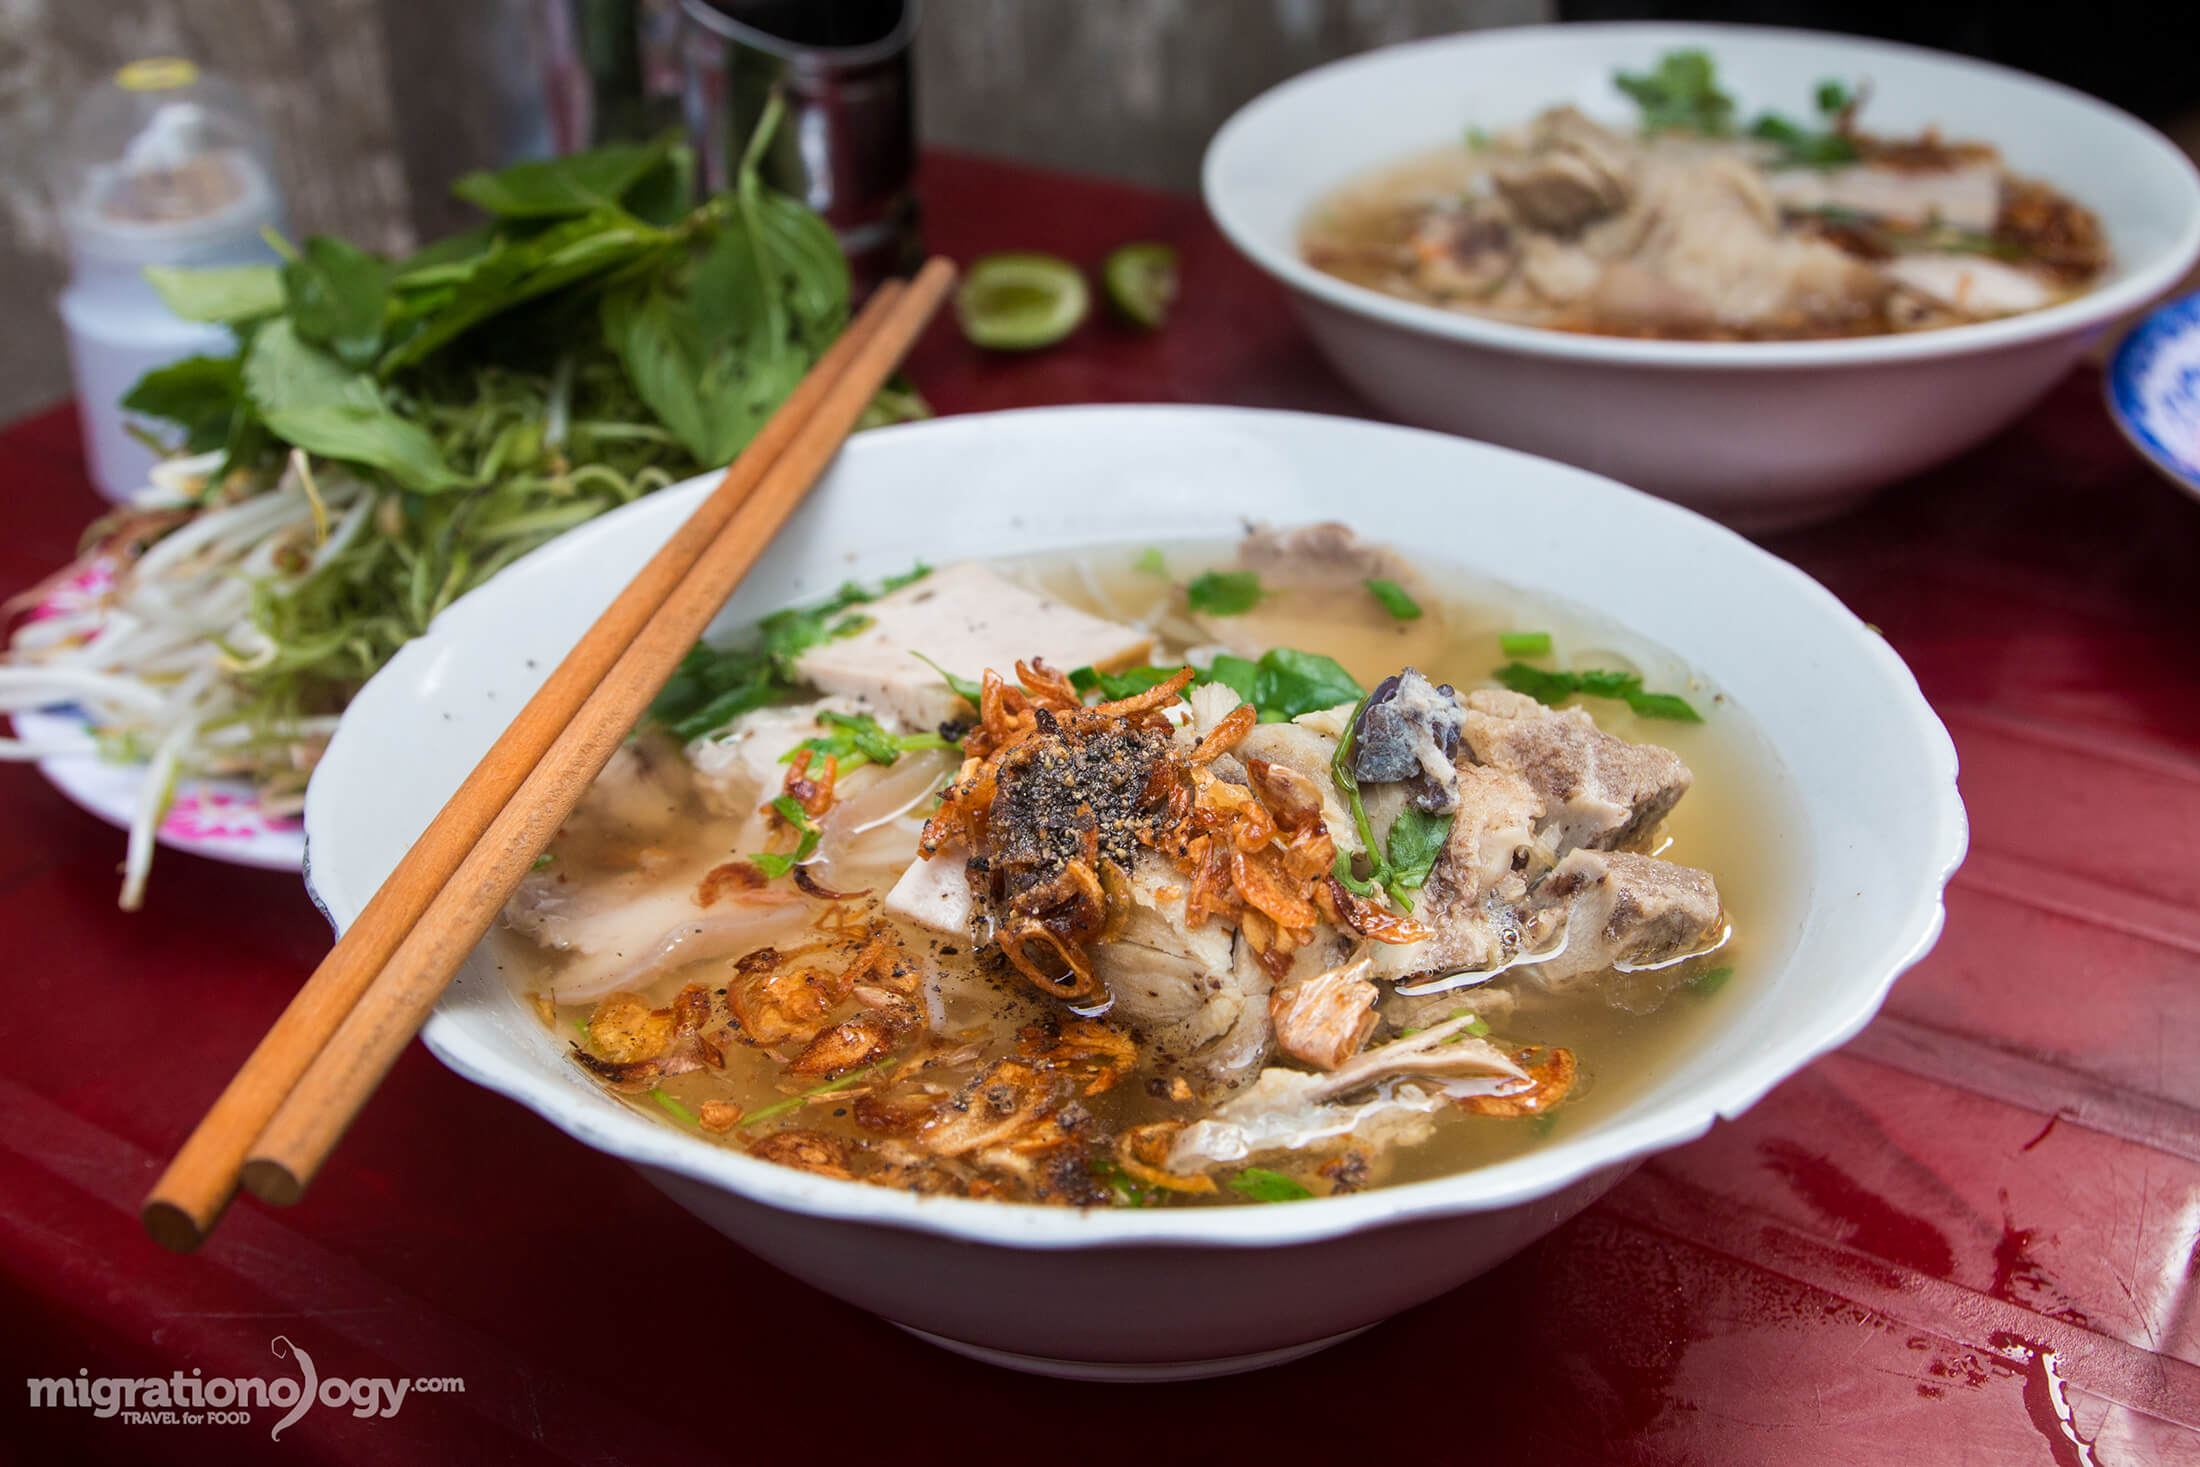 Bun Moc: Delicious Noodles Down an Alley in Saigon